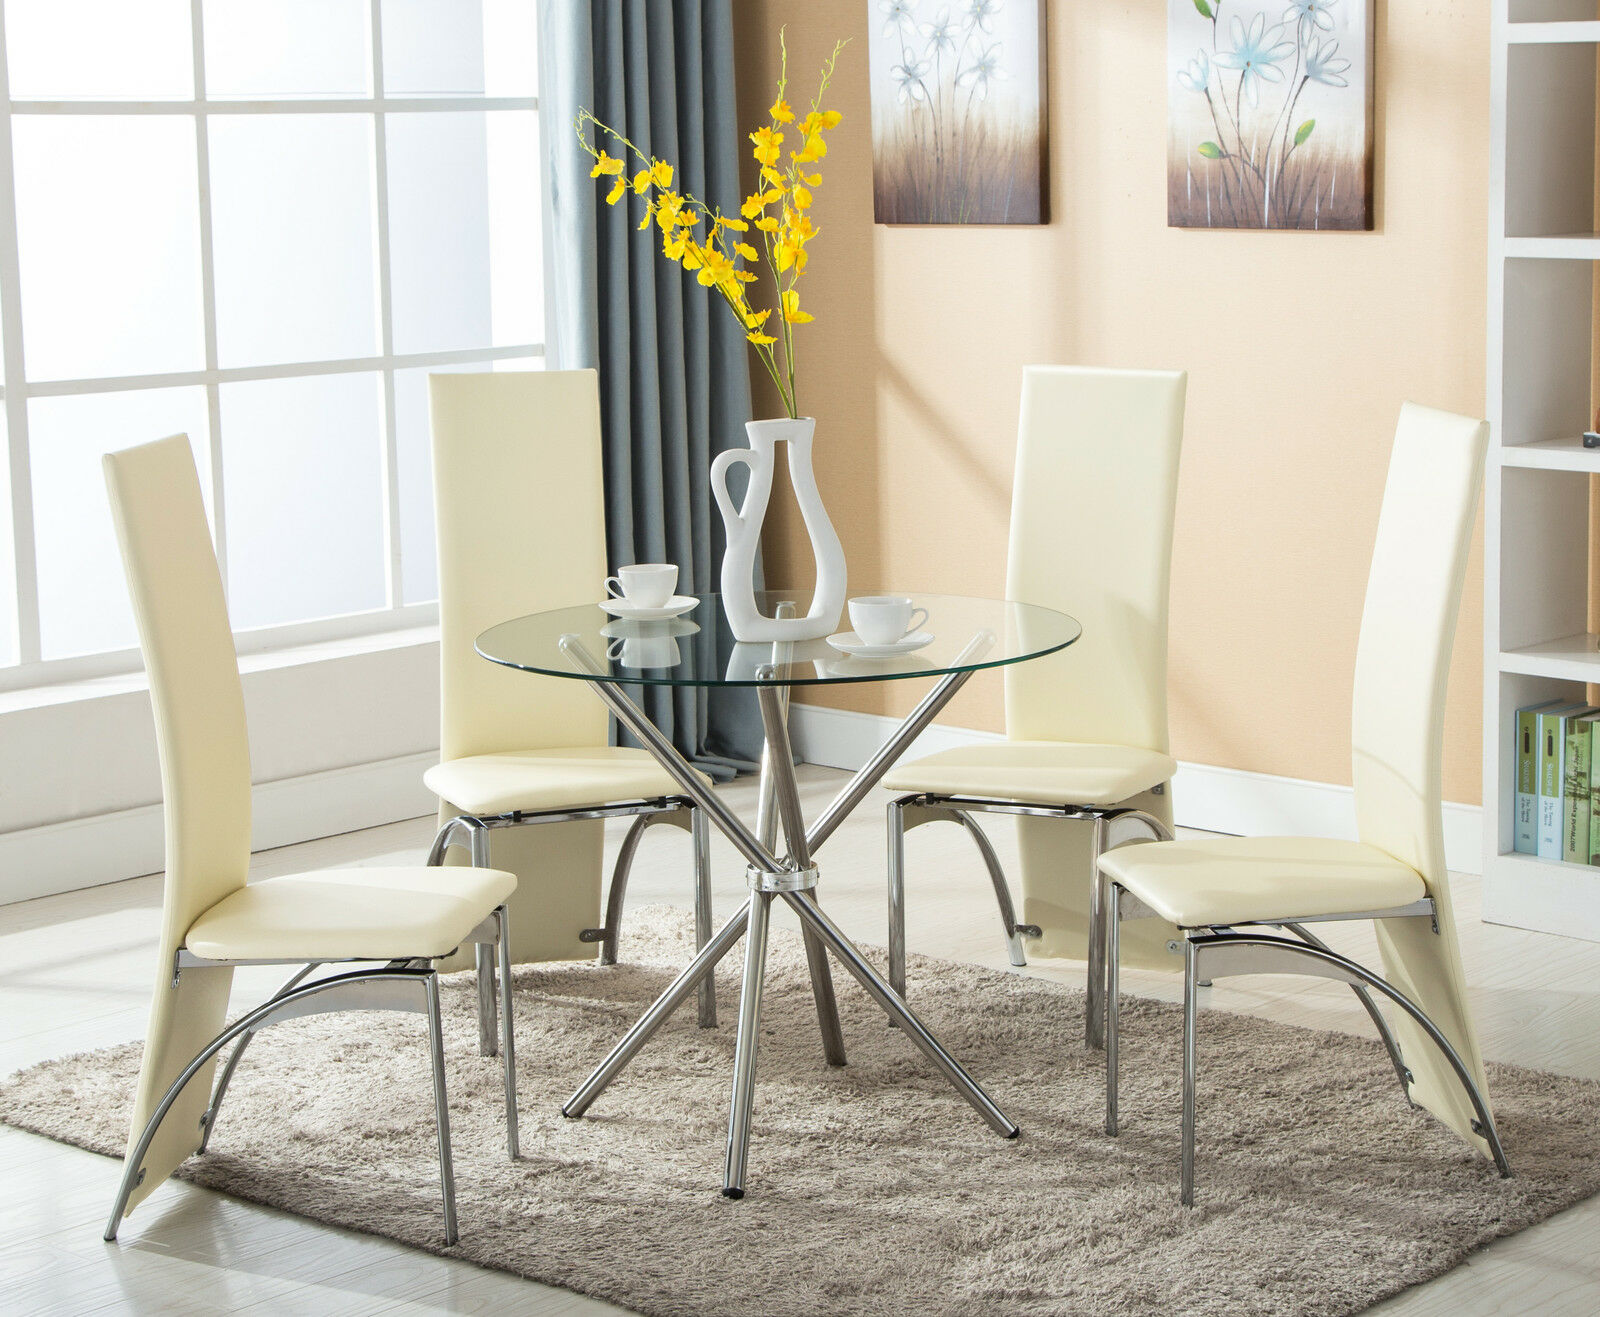 Terrific Details About 4 Chairs 5 Piece Round Glass Dining Table Set Kitchen Room Breakfast Furniture Short Links Chair Design For Home Short Linksinfo